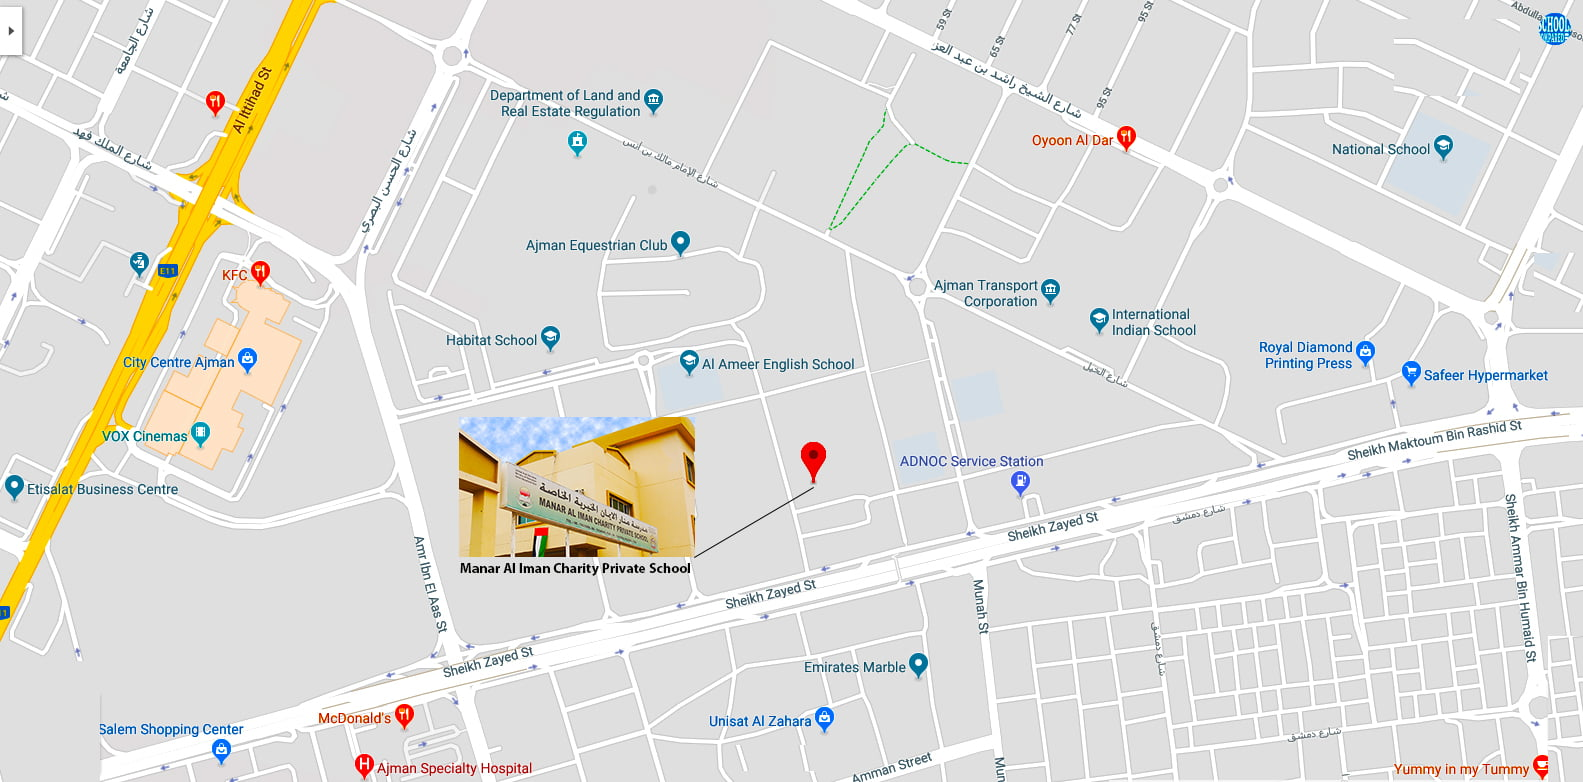 Map showing the location of Manar Al Iman Charity Private School in Ajman